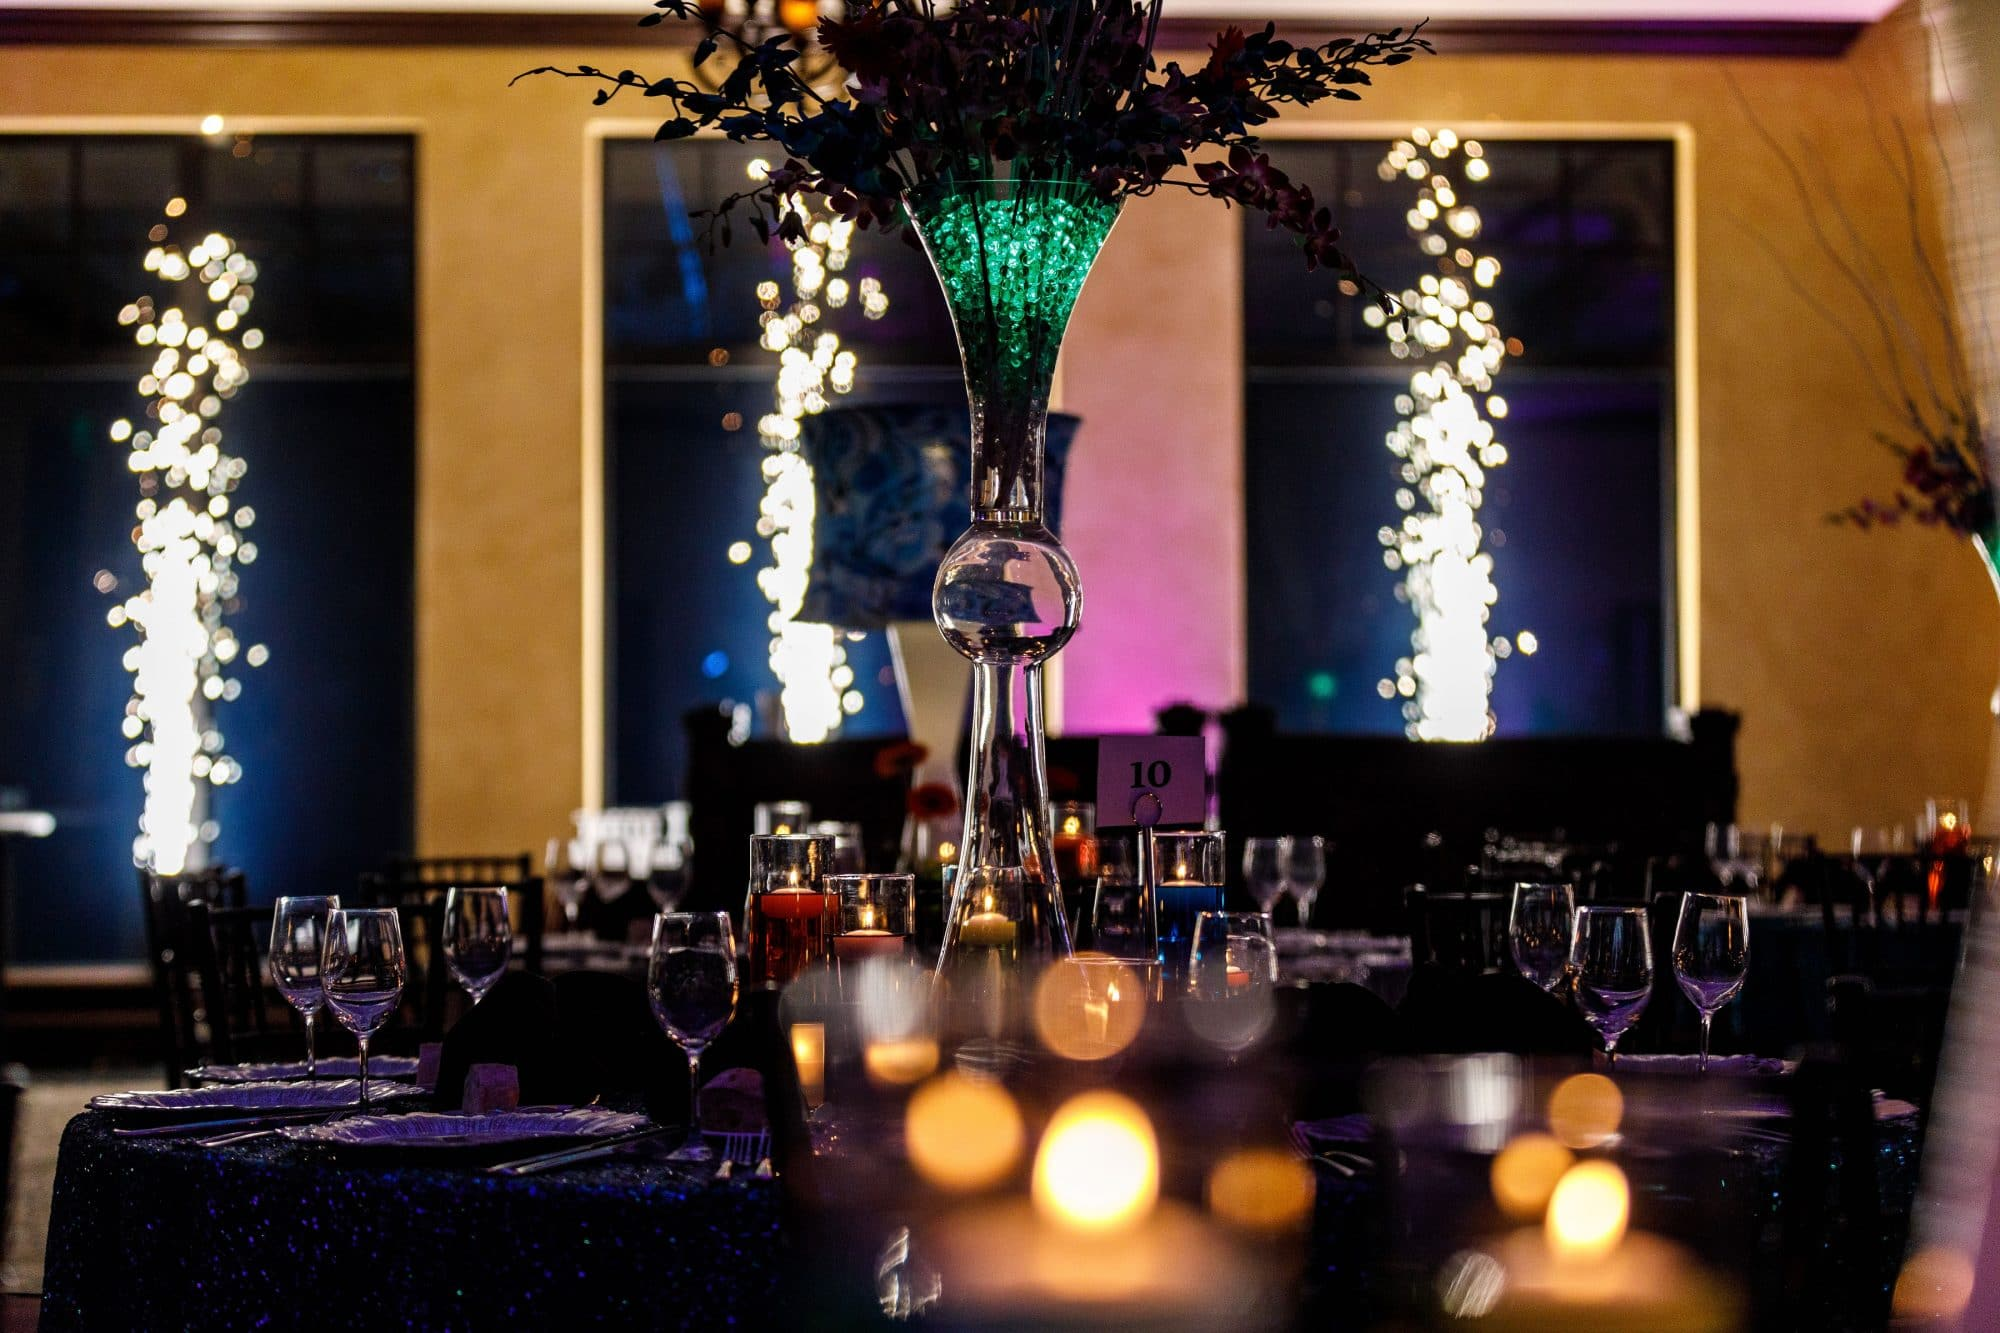 Get Lit Productions - reception room with sparks firing in background